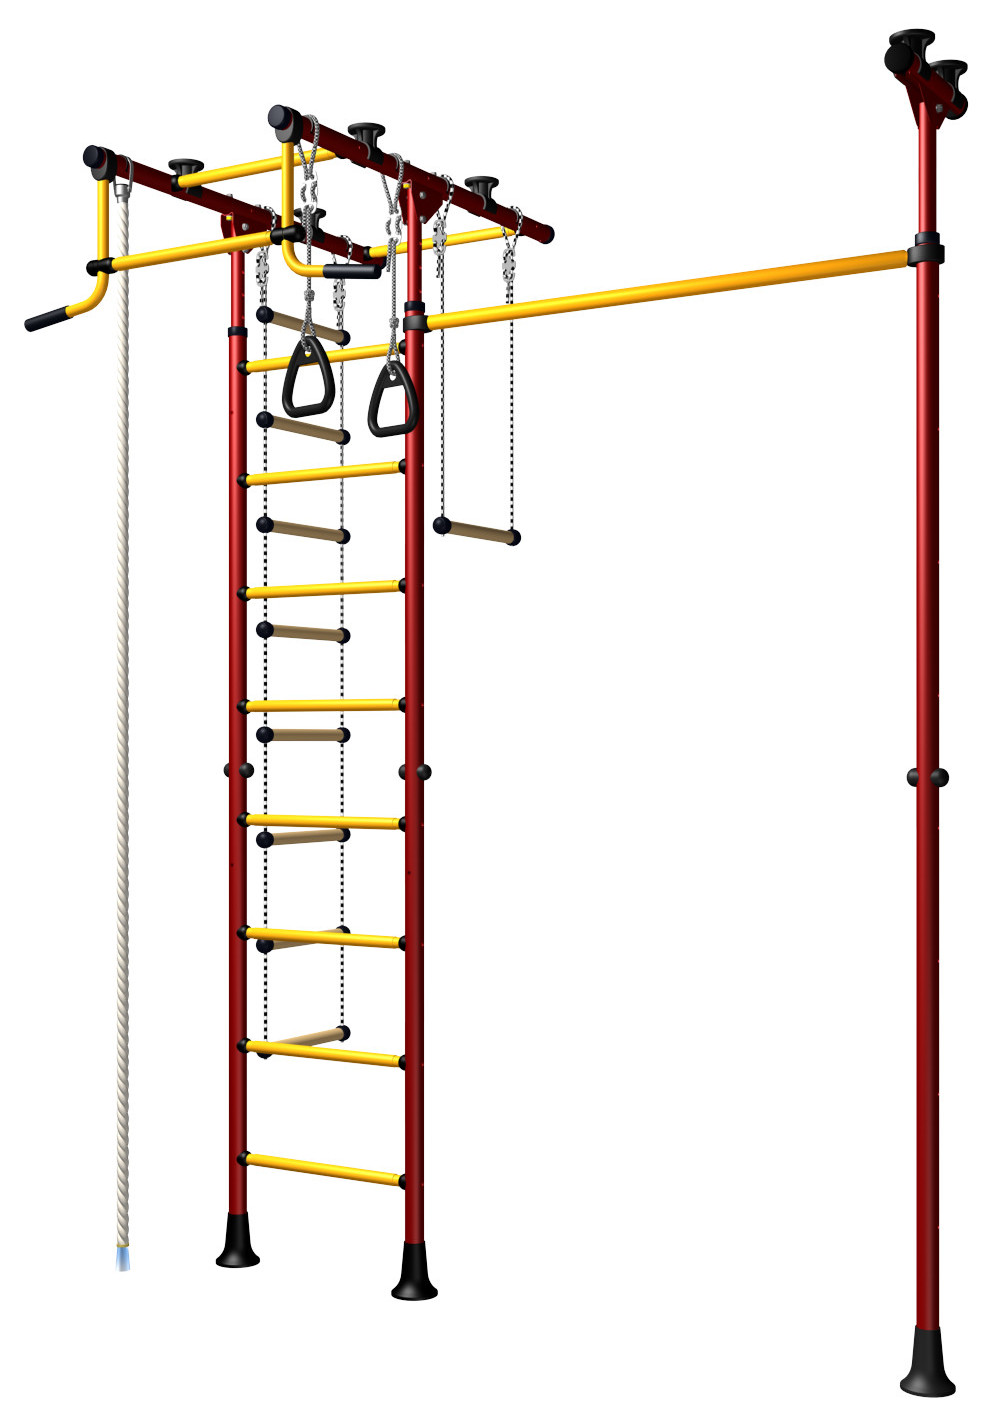 Indoor Sport Gym for Kids, model Comet-3.06 - metal rungs covered with plastic  - Additional Pull Up Bar